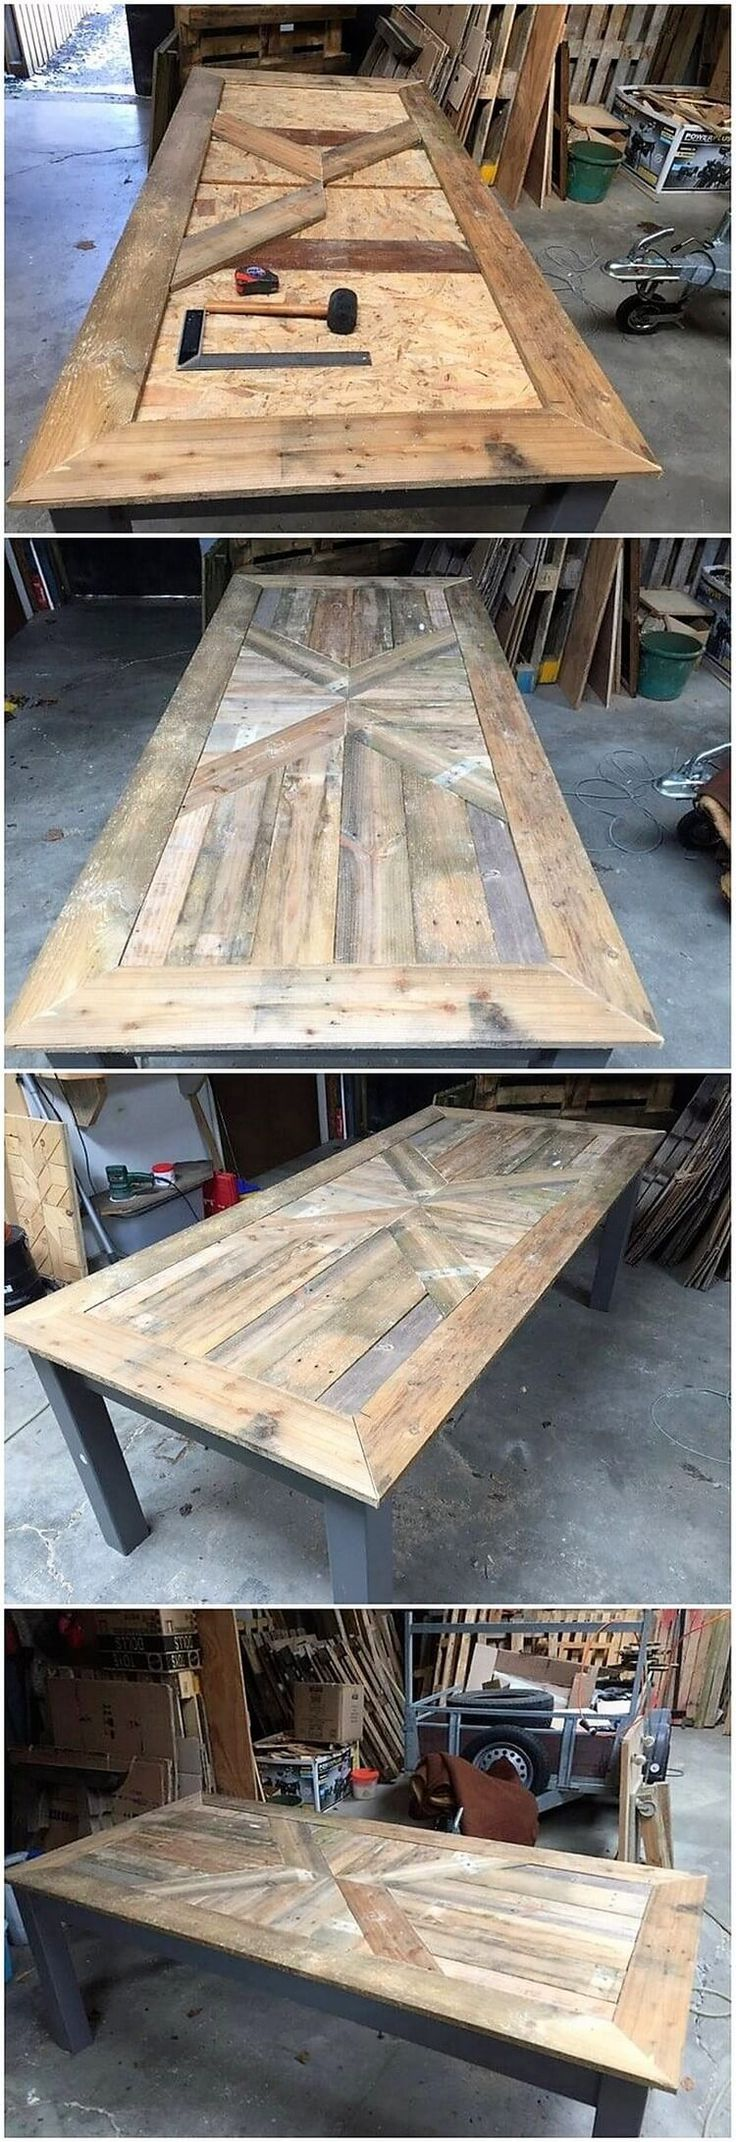 Incredible Ideas for Upcycling Shipping Wooden Pallets #wood Pallets # Ideas #u ...